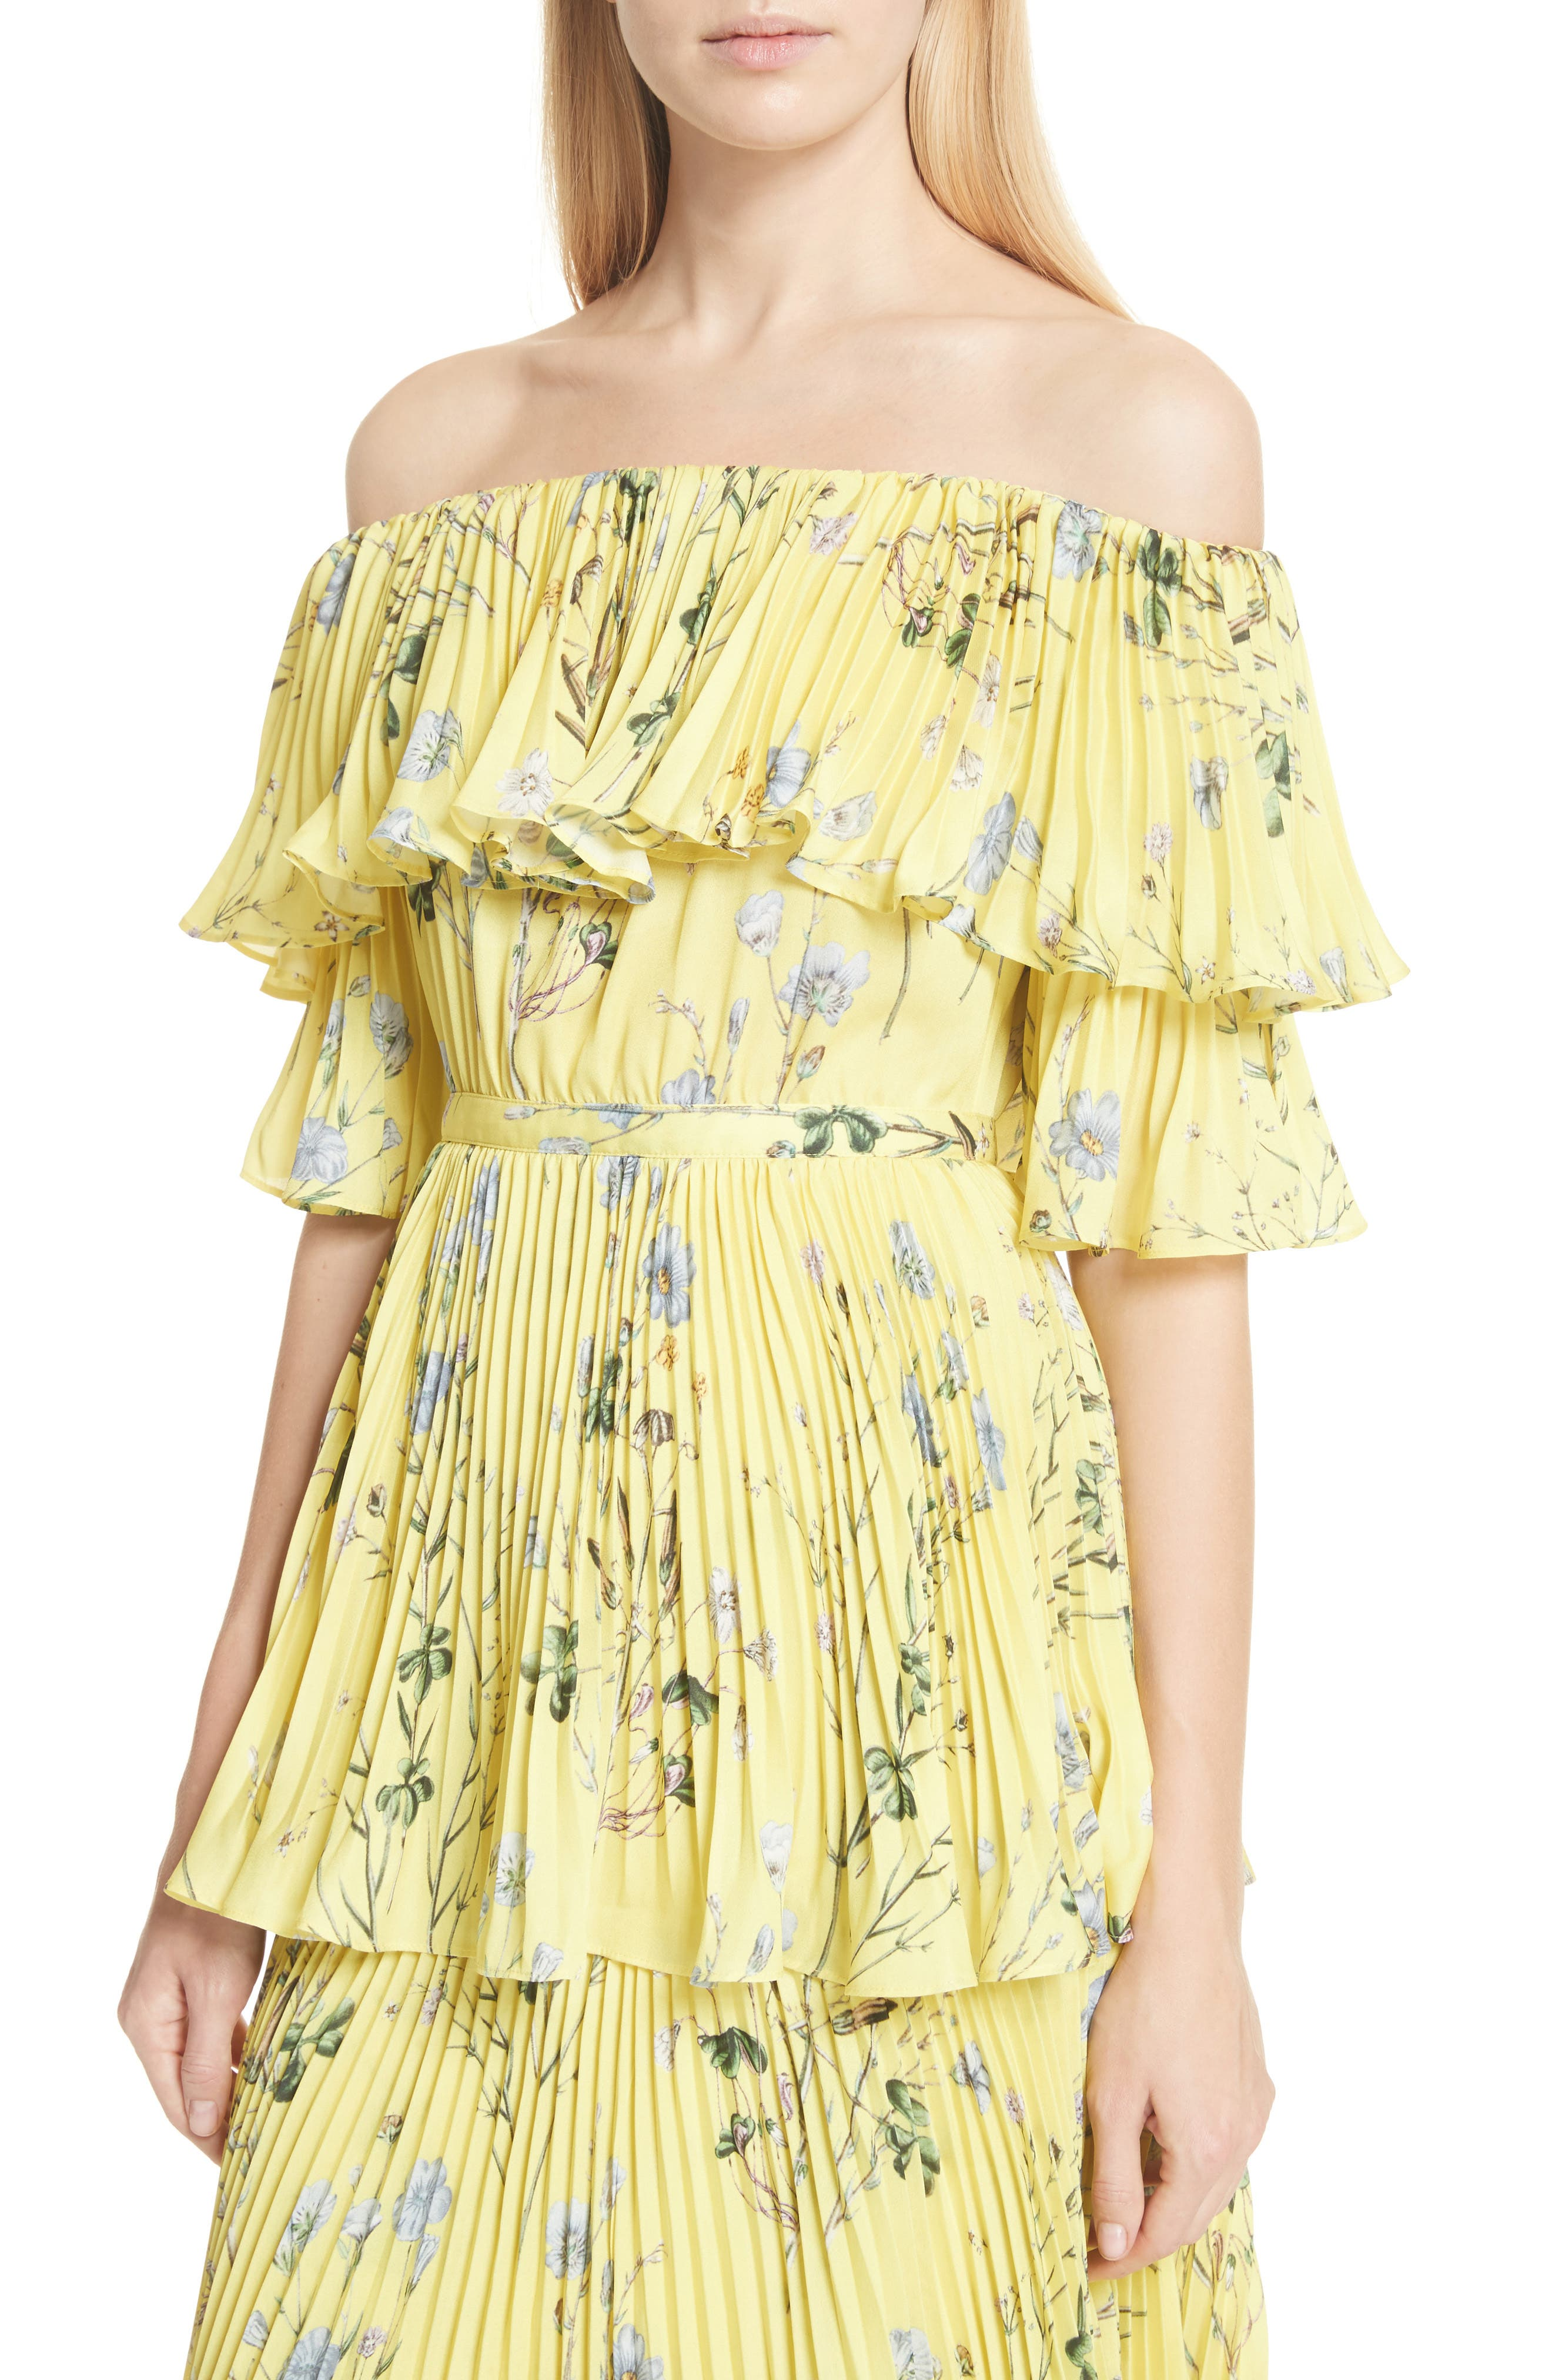 Floral Pleated Tiered Dress,                             Alternate thumbnail 4, color,                             700